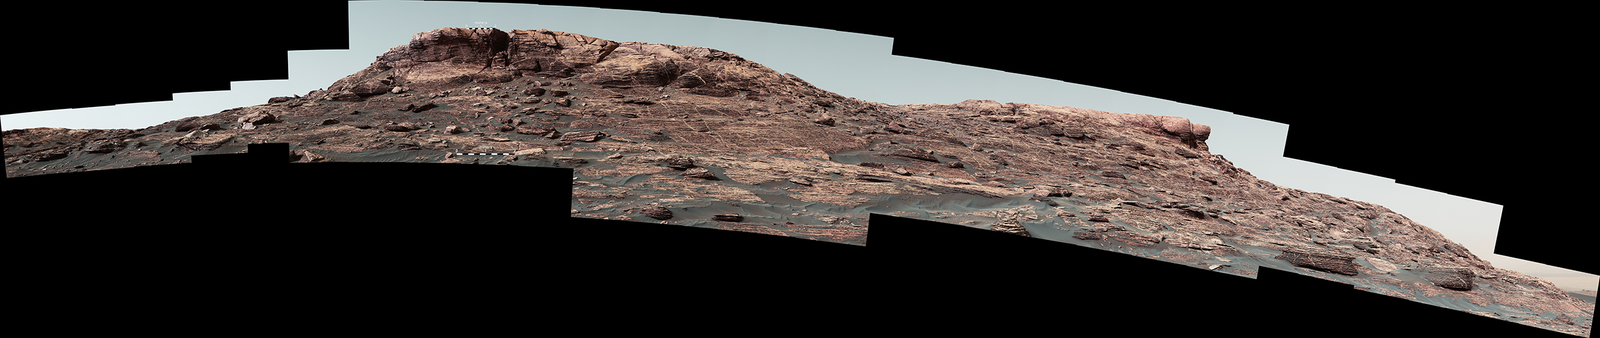 "Researchers used the Mastcam on NASA's Curiosity Mars rover to gain this detailed view of layers in ""Vera Rubin Ridge"" from just below the ridge. The scene combines 70 images taken with the Mastcam's right-eye, telephoto-lens camera, on Aug. 13, 2017."